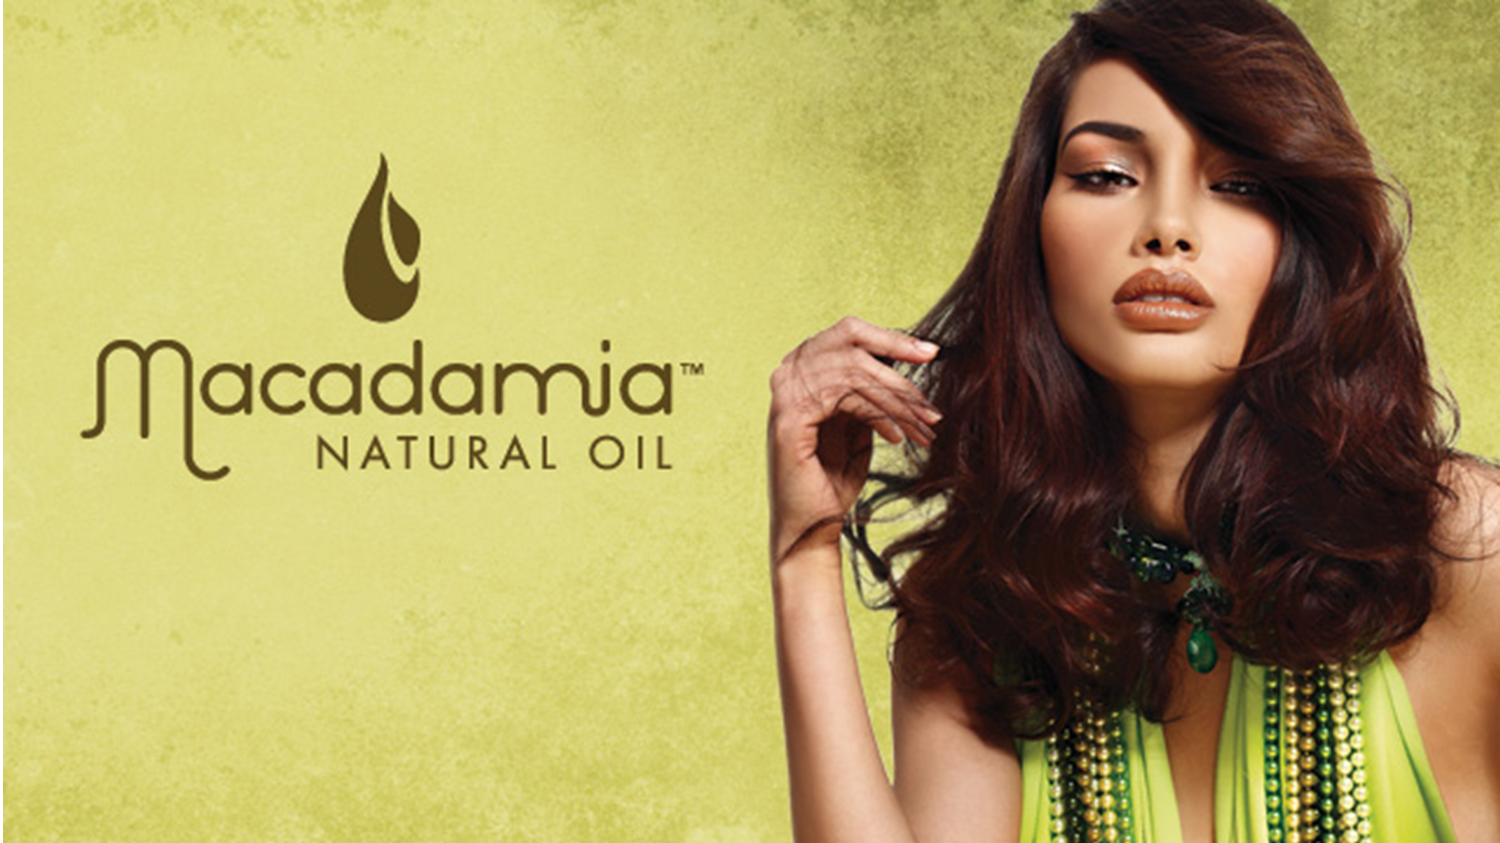 Star Avenue Capital Invests in Macadamia Natural Oil